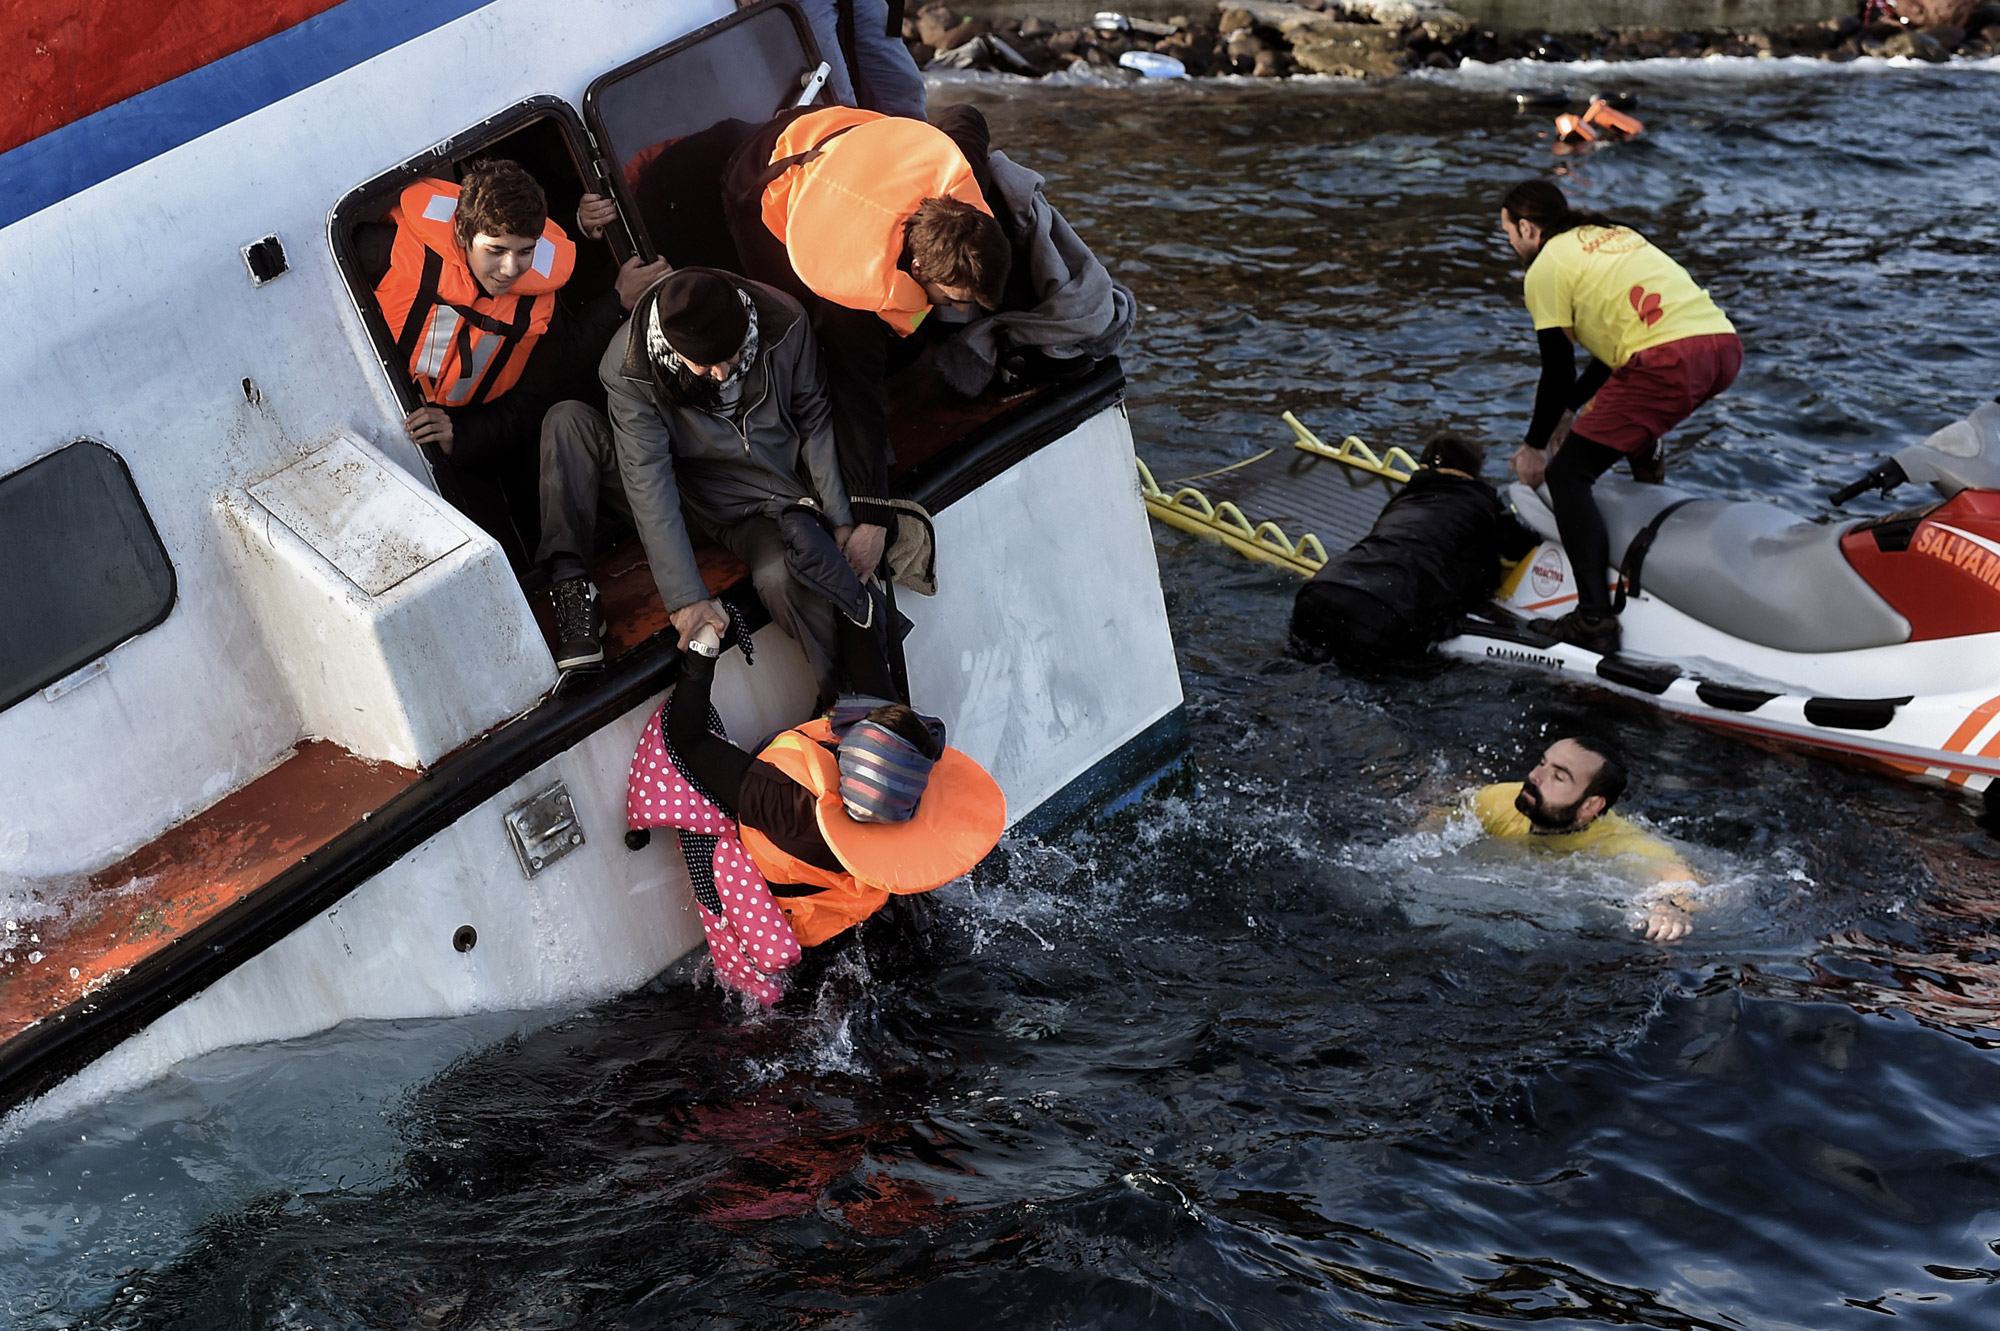 Rescue workers on a jet ski assist refugees and migrants as their boat sinks off the Greek island of Lesbos on Oct. 30, 2015.